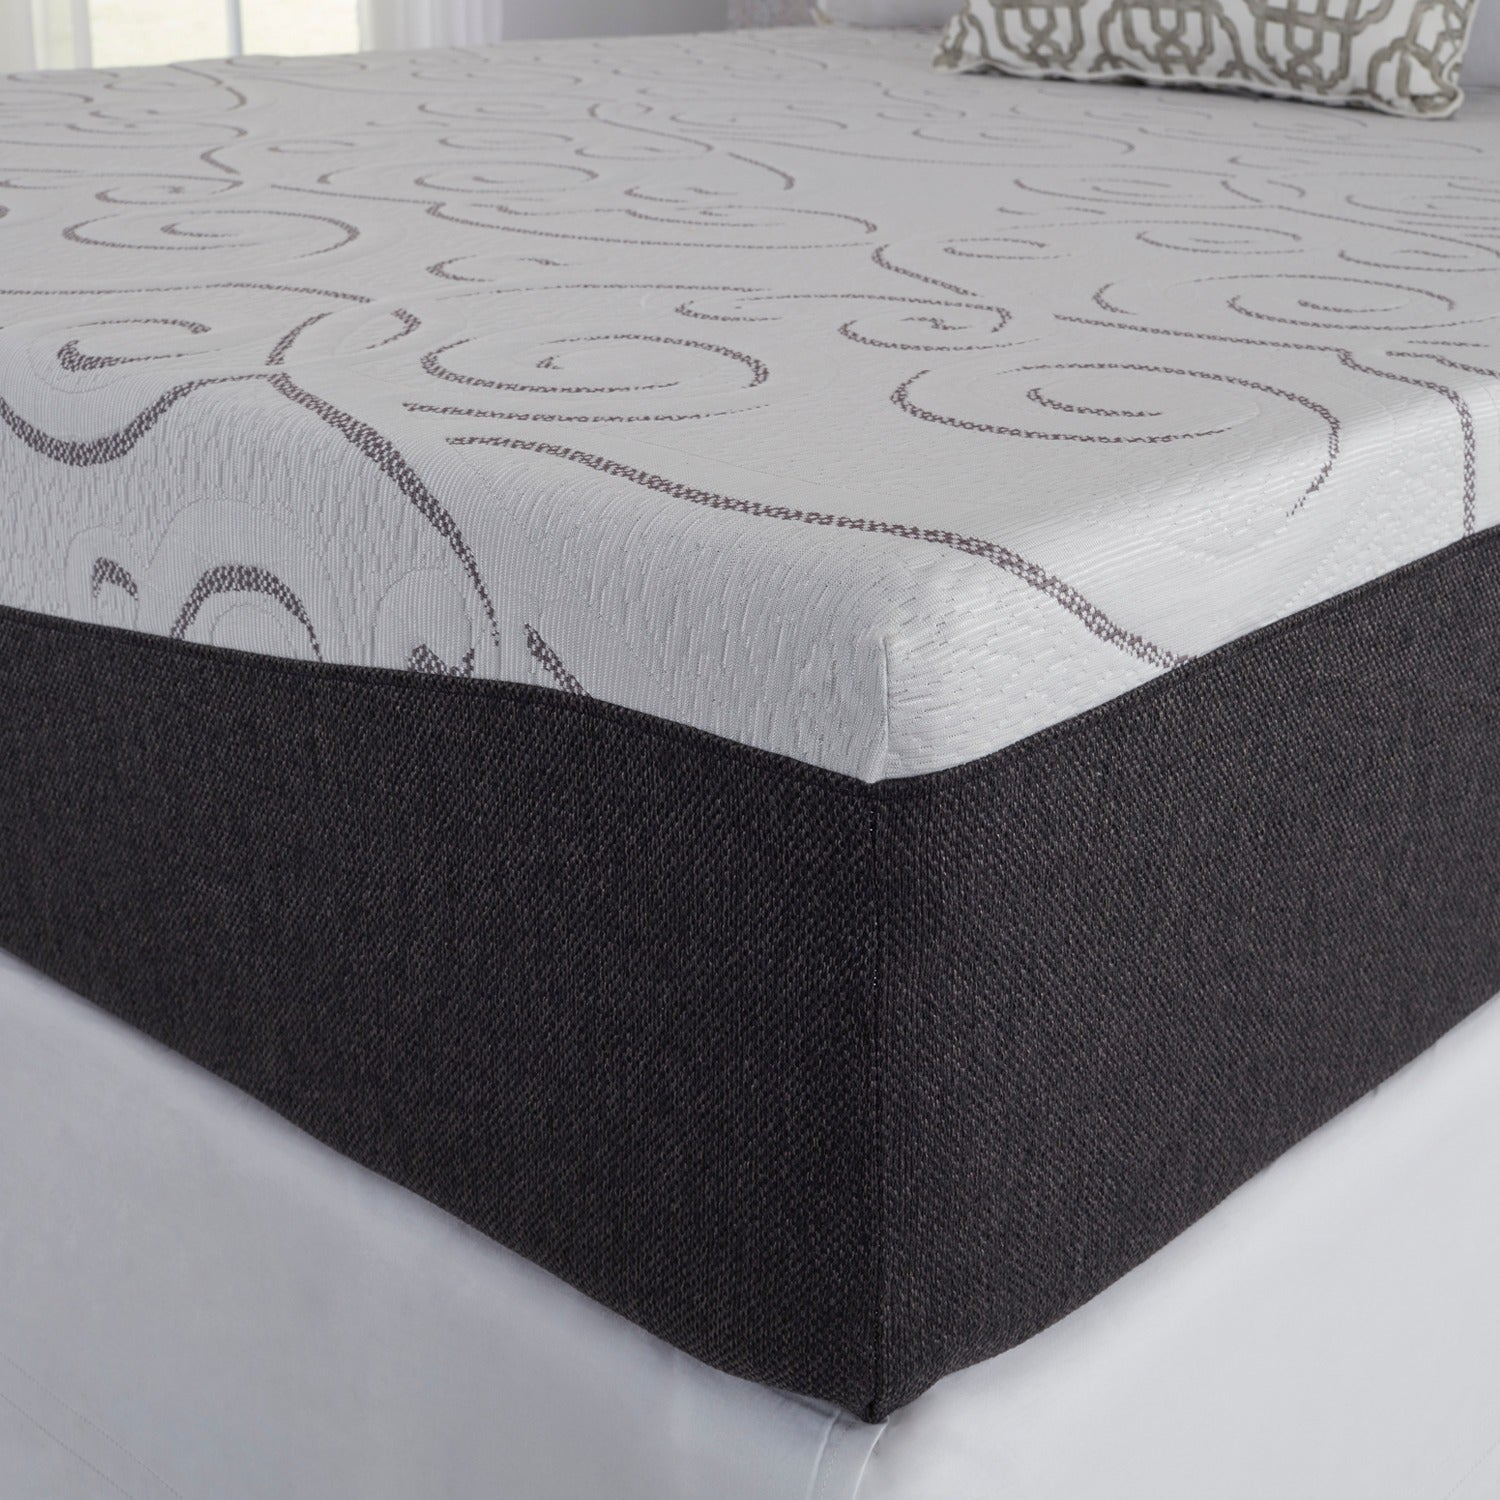 slumber mattress in a box. Slumber Solutions Northern Lights Choose Your Comfort Gel Memory Foam 14-inch Queen-size Mattress - Free Shipping Today Overstock 24036650 In A Box